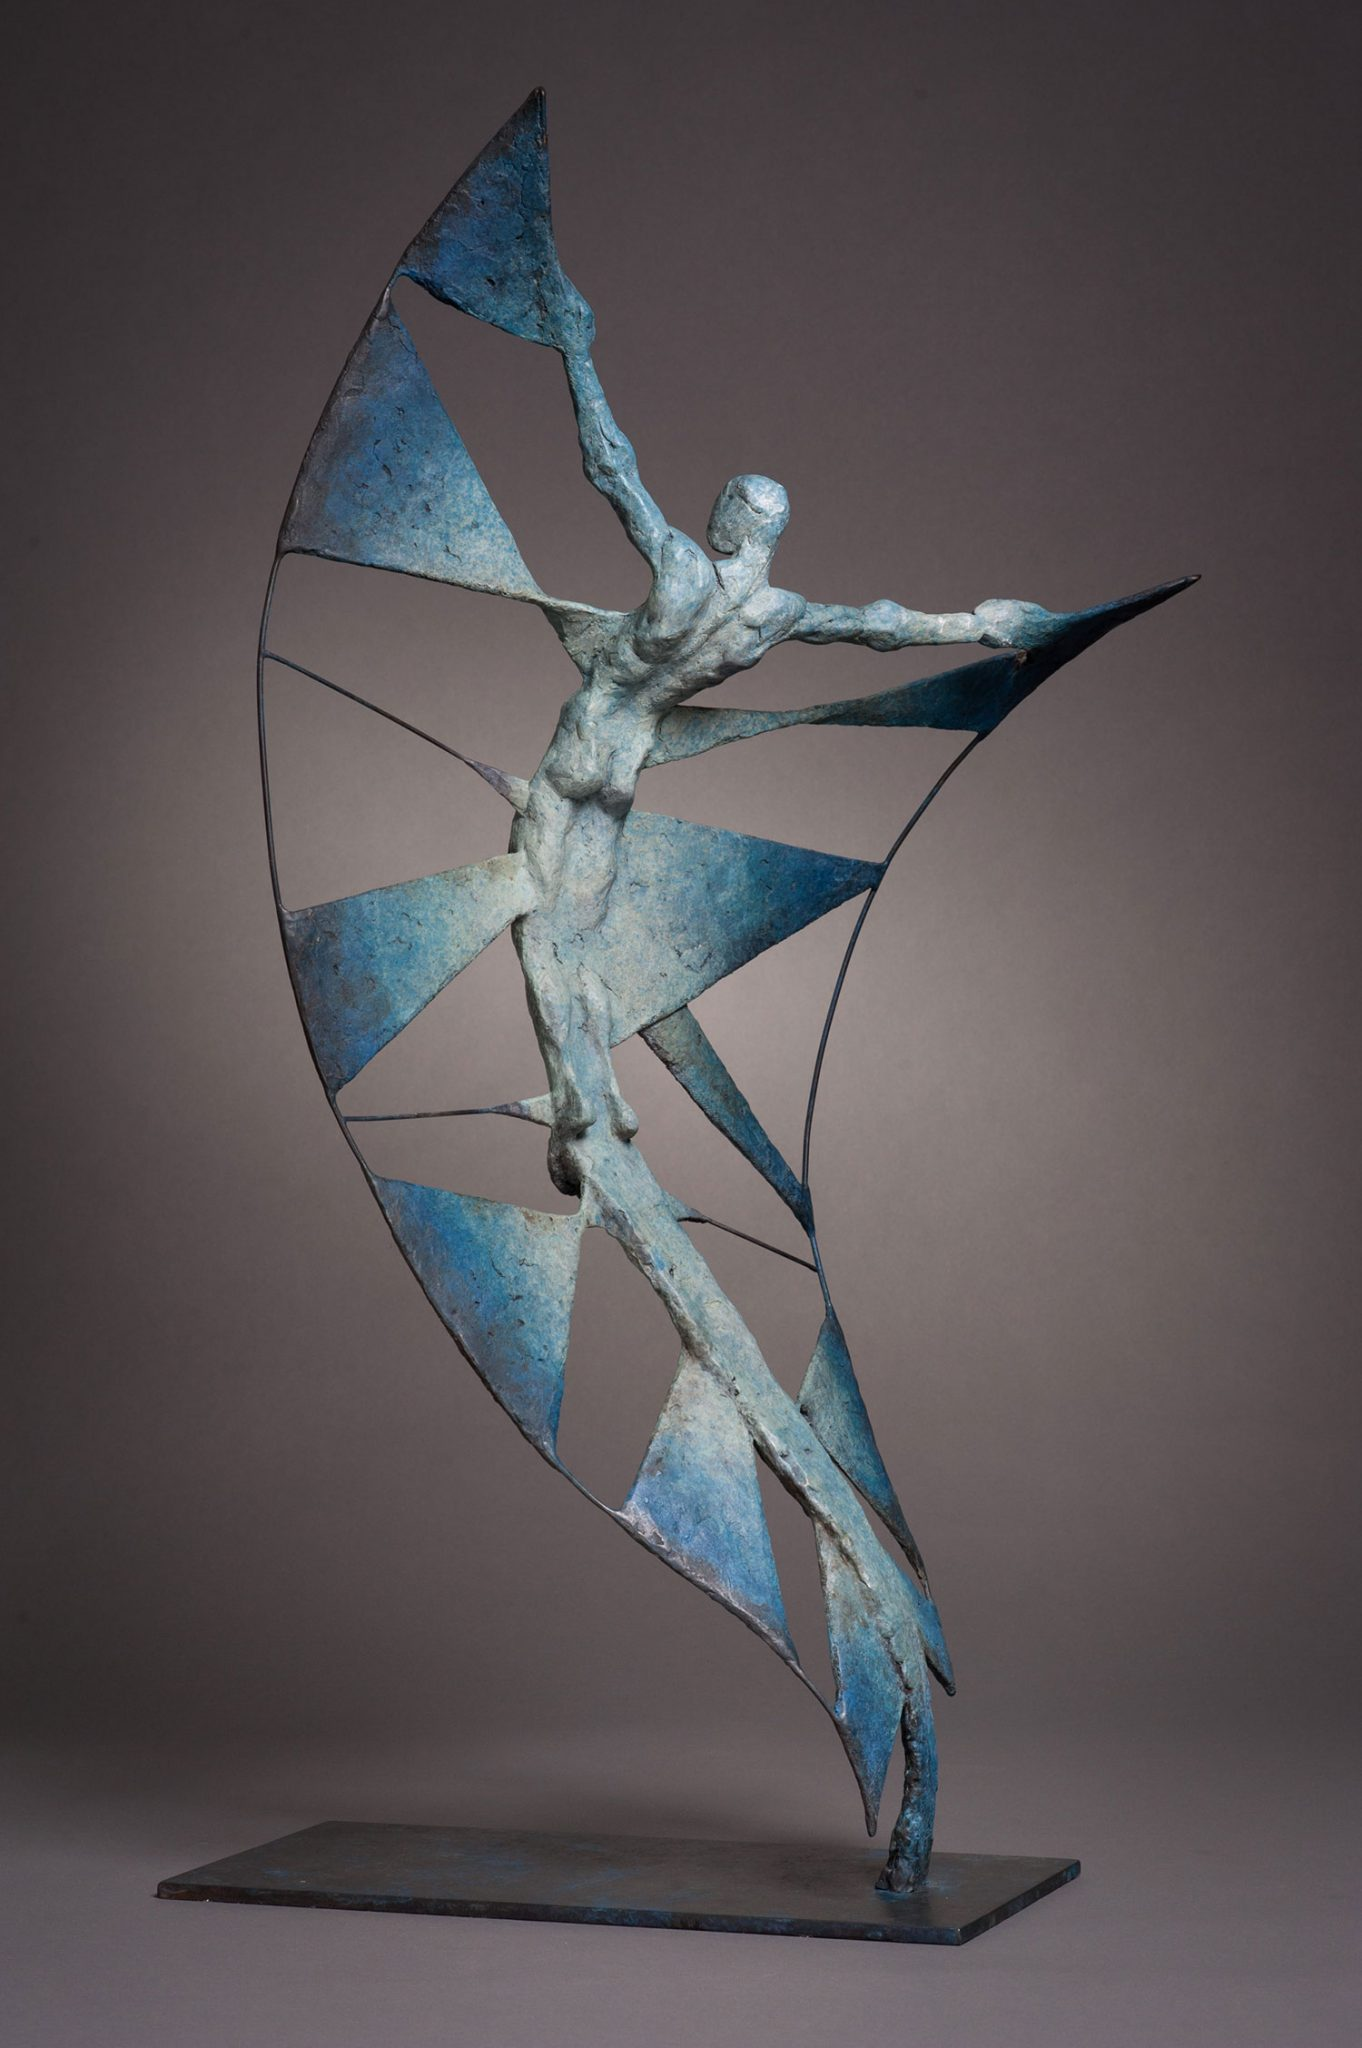 Vol d'Etincelle II. Spark II. Bronze abstract sculpture in blue.